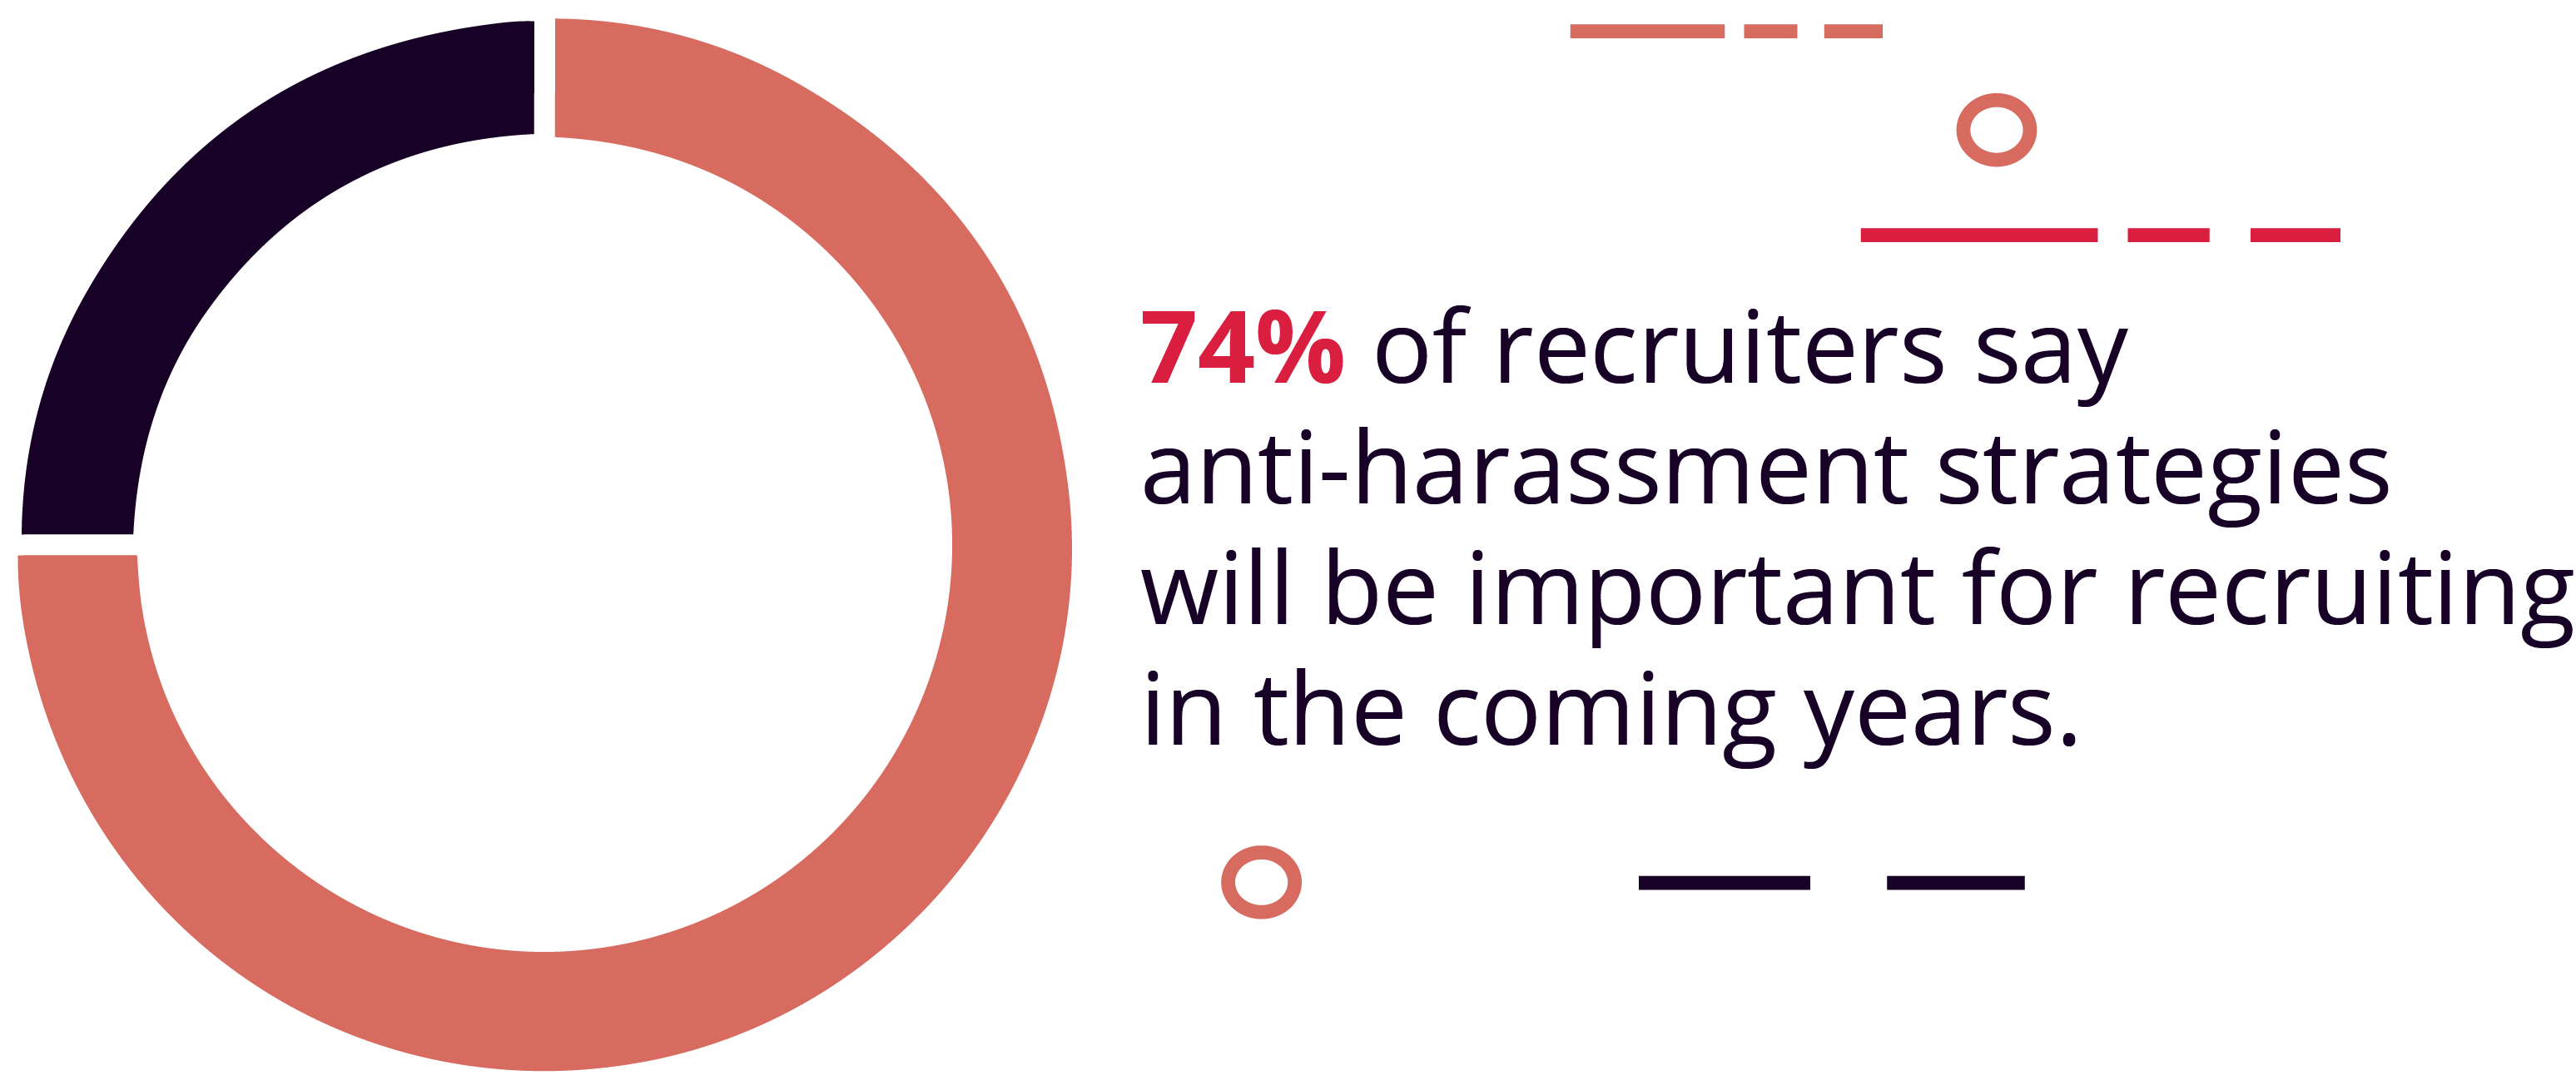 29. 74% of recruiters say anti-harassment strategies will be important for recruiting in the coming years